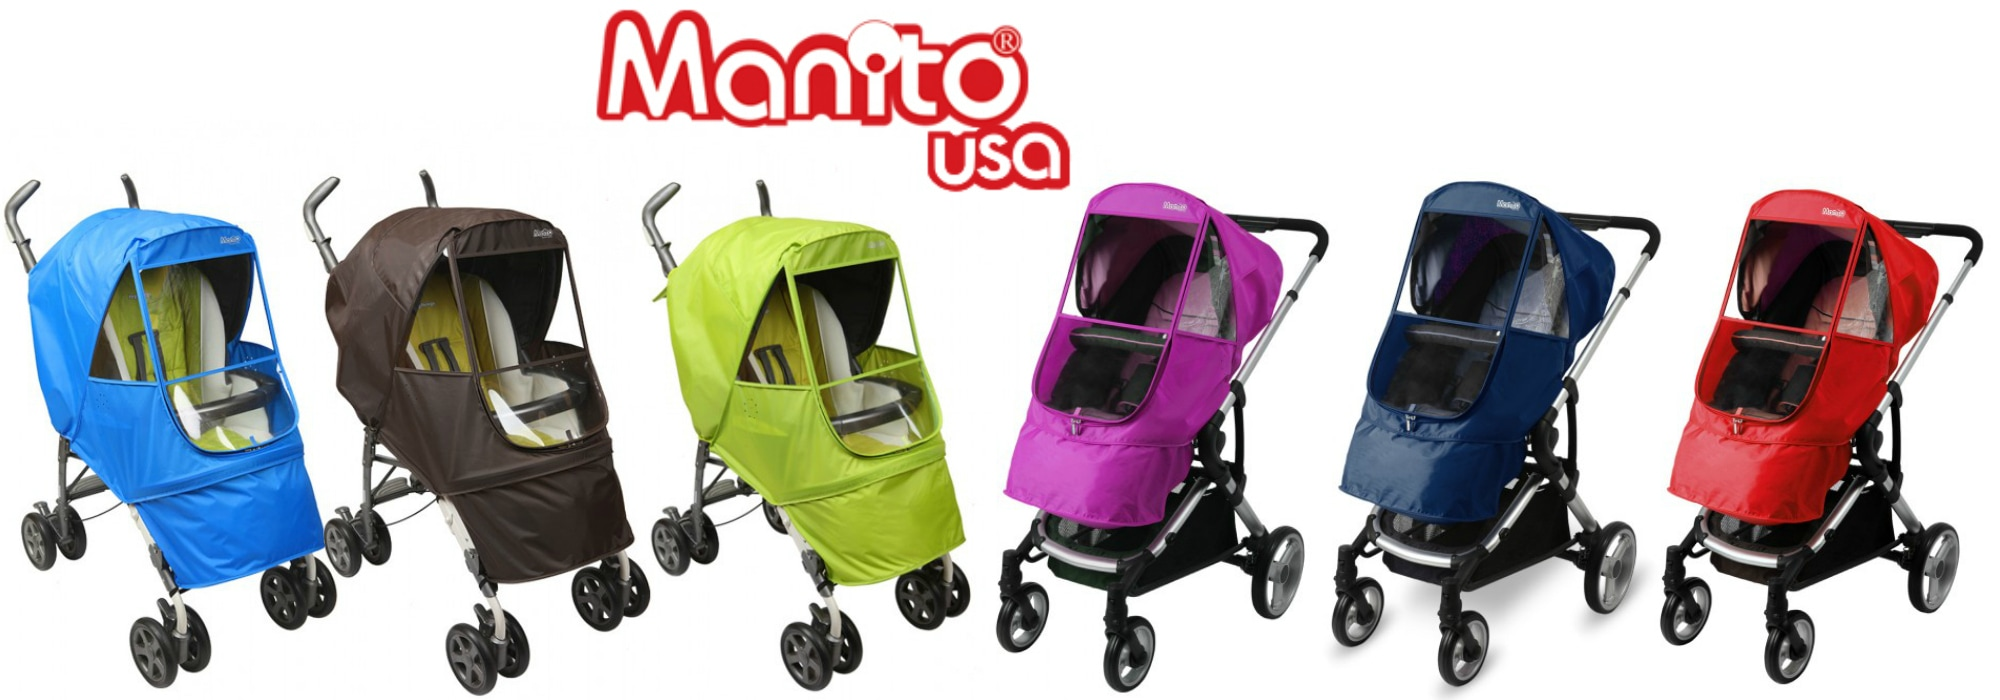 Win a Manito Elegance Stroller Shield in US Japan Fam's $500 value